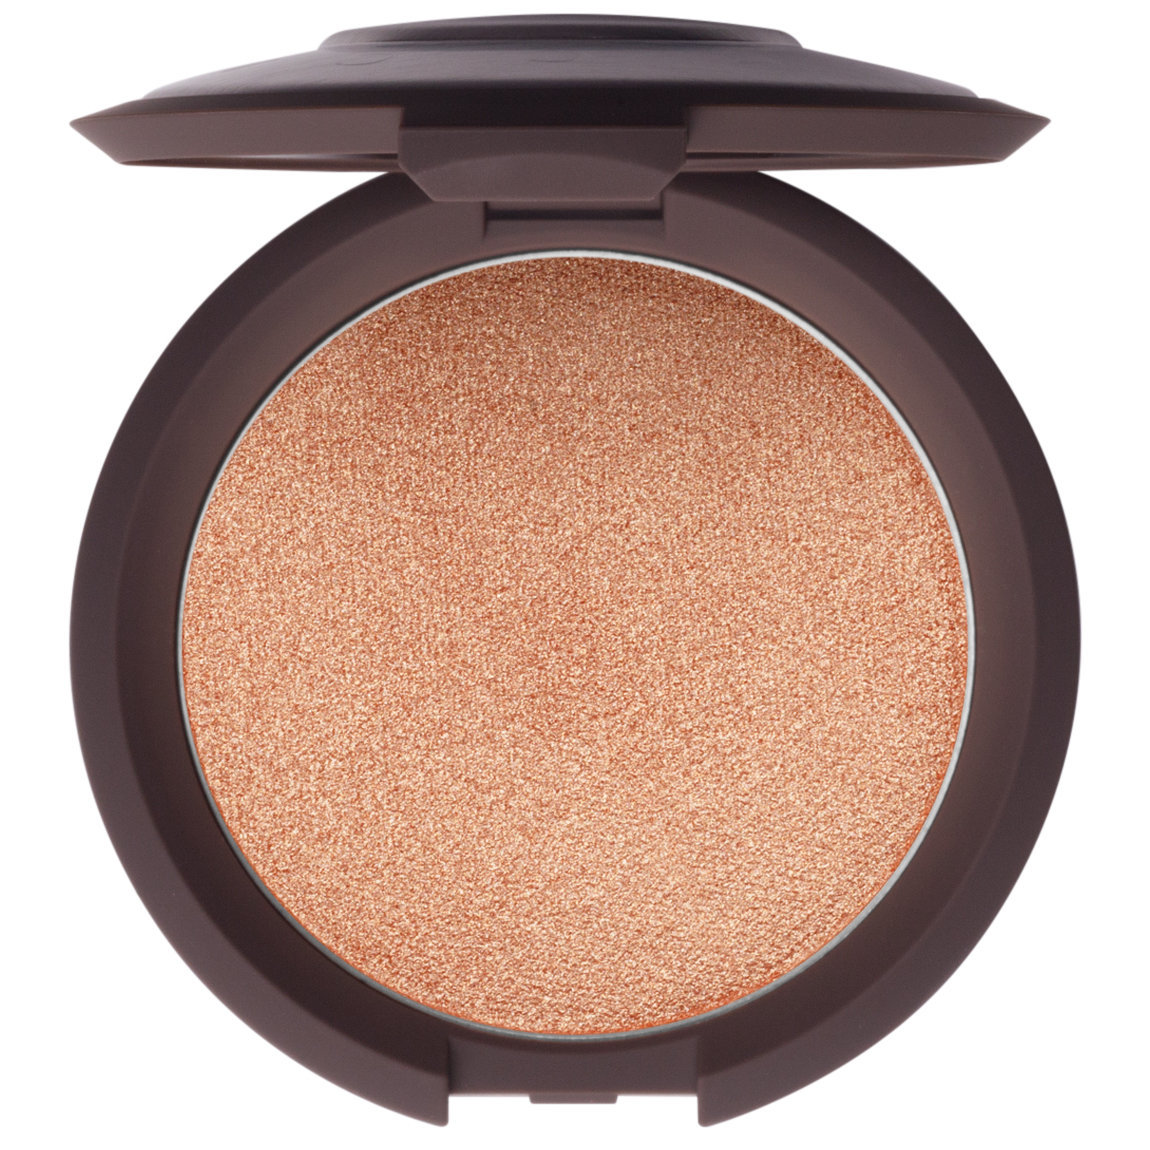 BECCA Cosmetics Shimmering Skin Perfector Pressed Highlighter Champagne Pop alternative view 1 - product swatch.